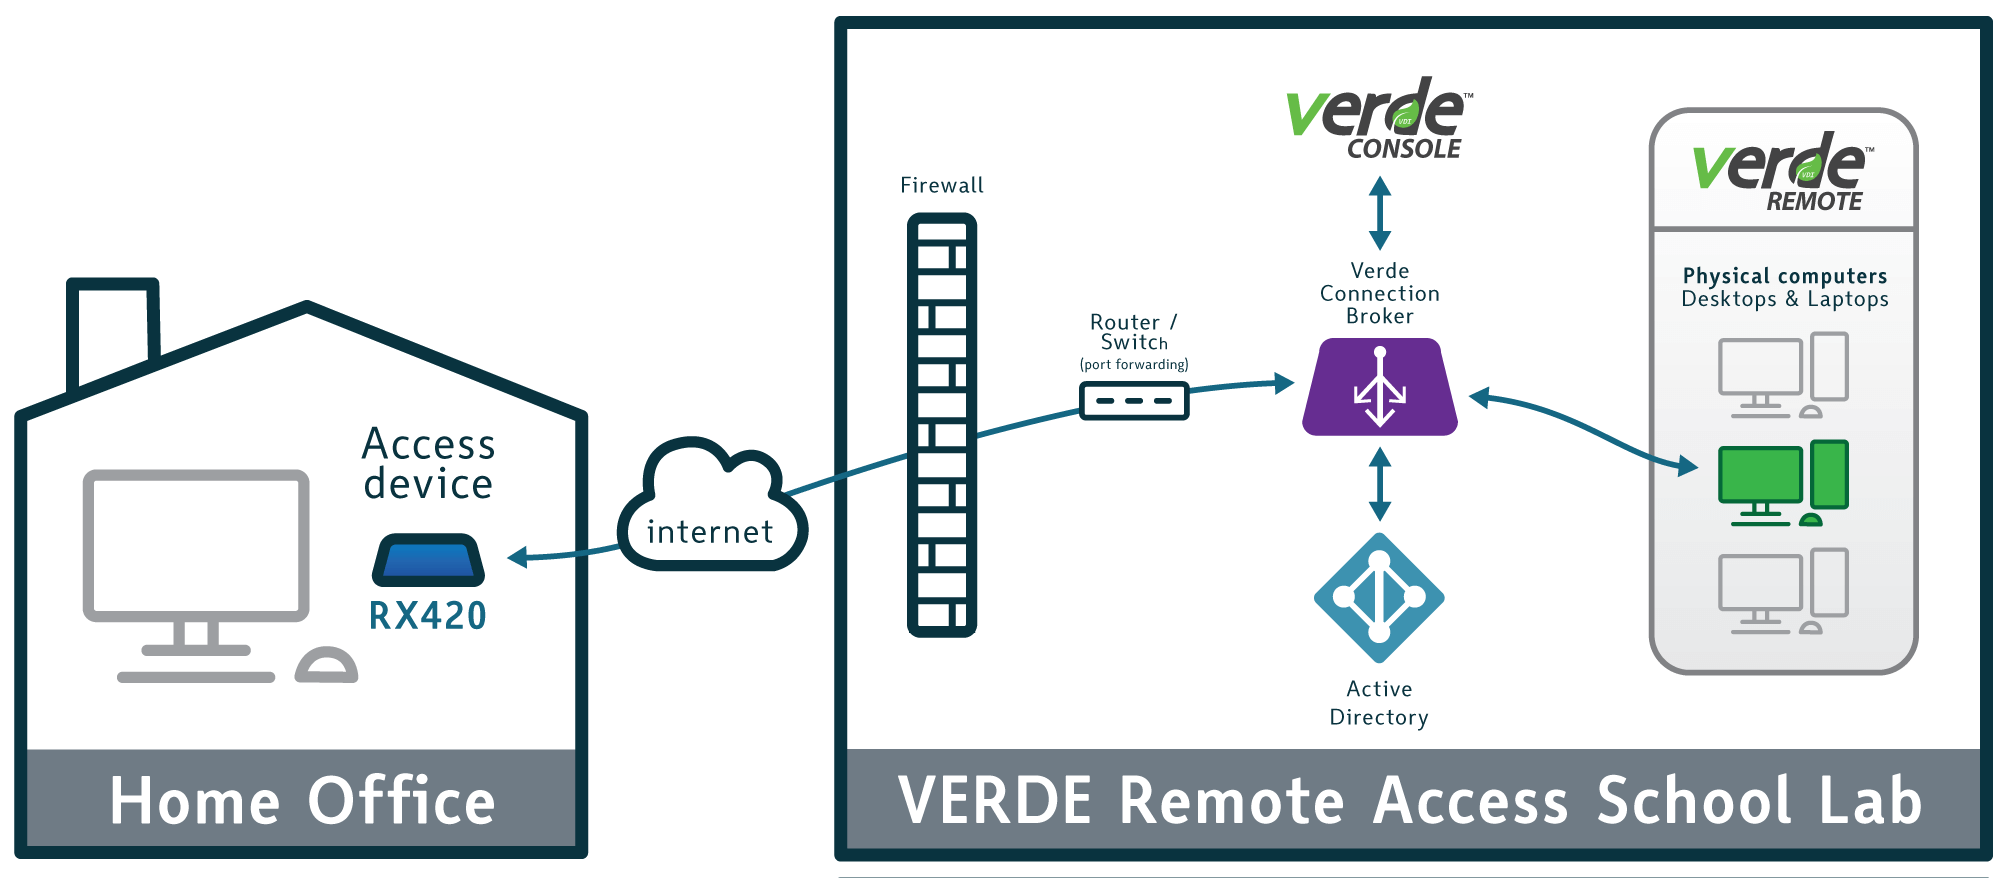 VERDE VDI Remote Access Architecture